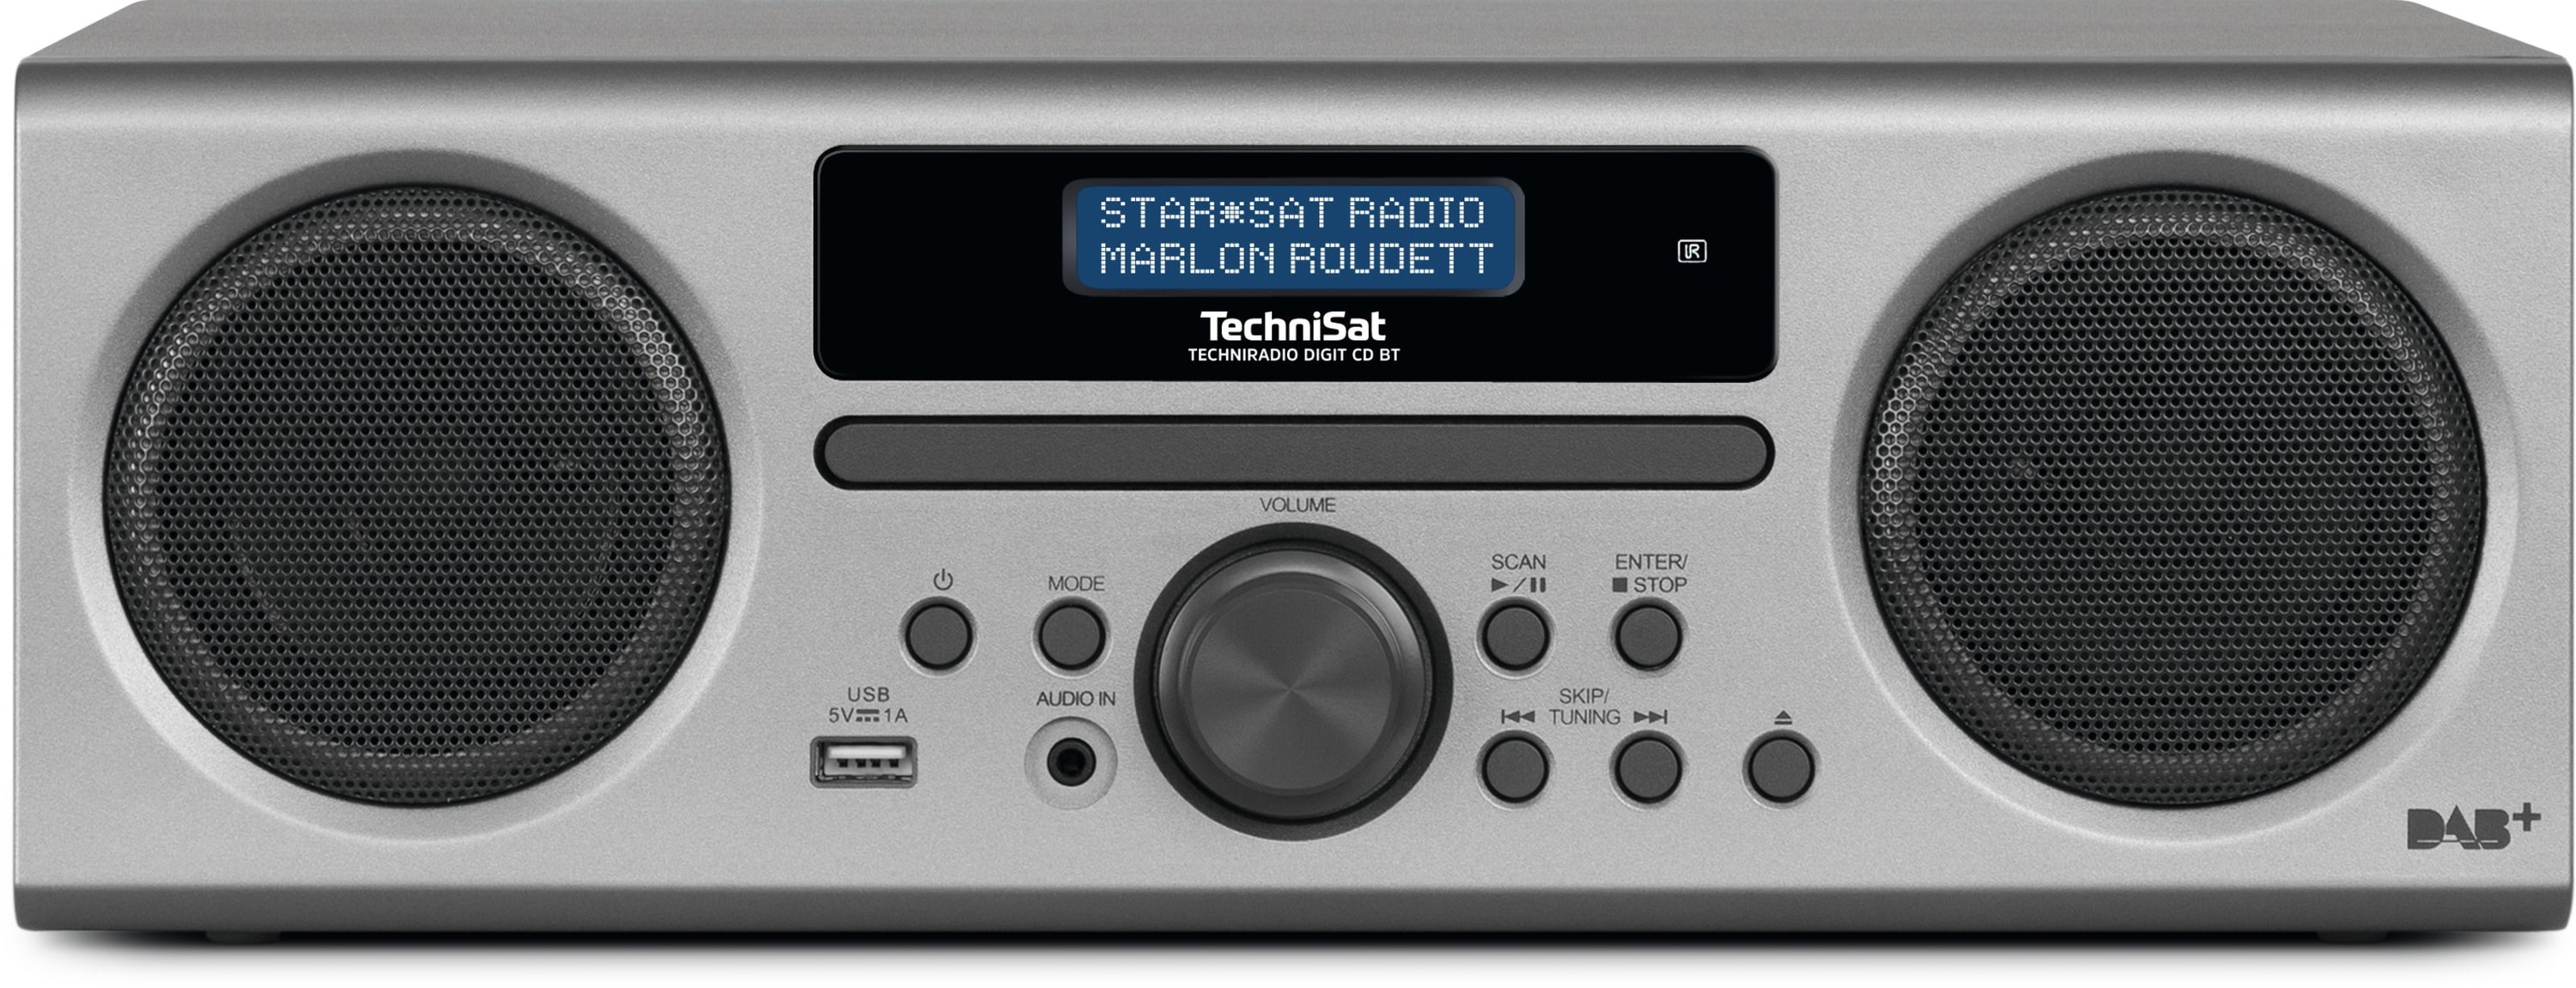 TechniSat TECHNIRADIO DIGIT CD BT DAB+/UKW Stereo-Radio 10W Bluetooth für 139,00 Euro